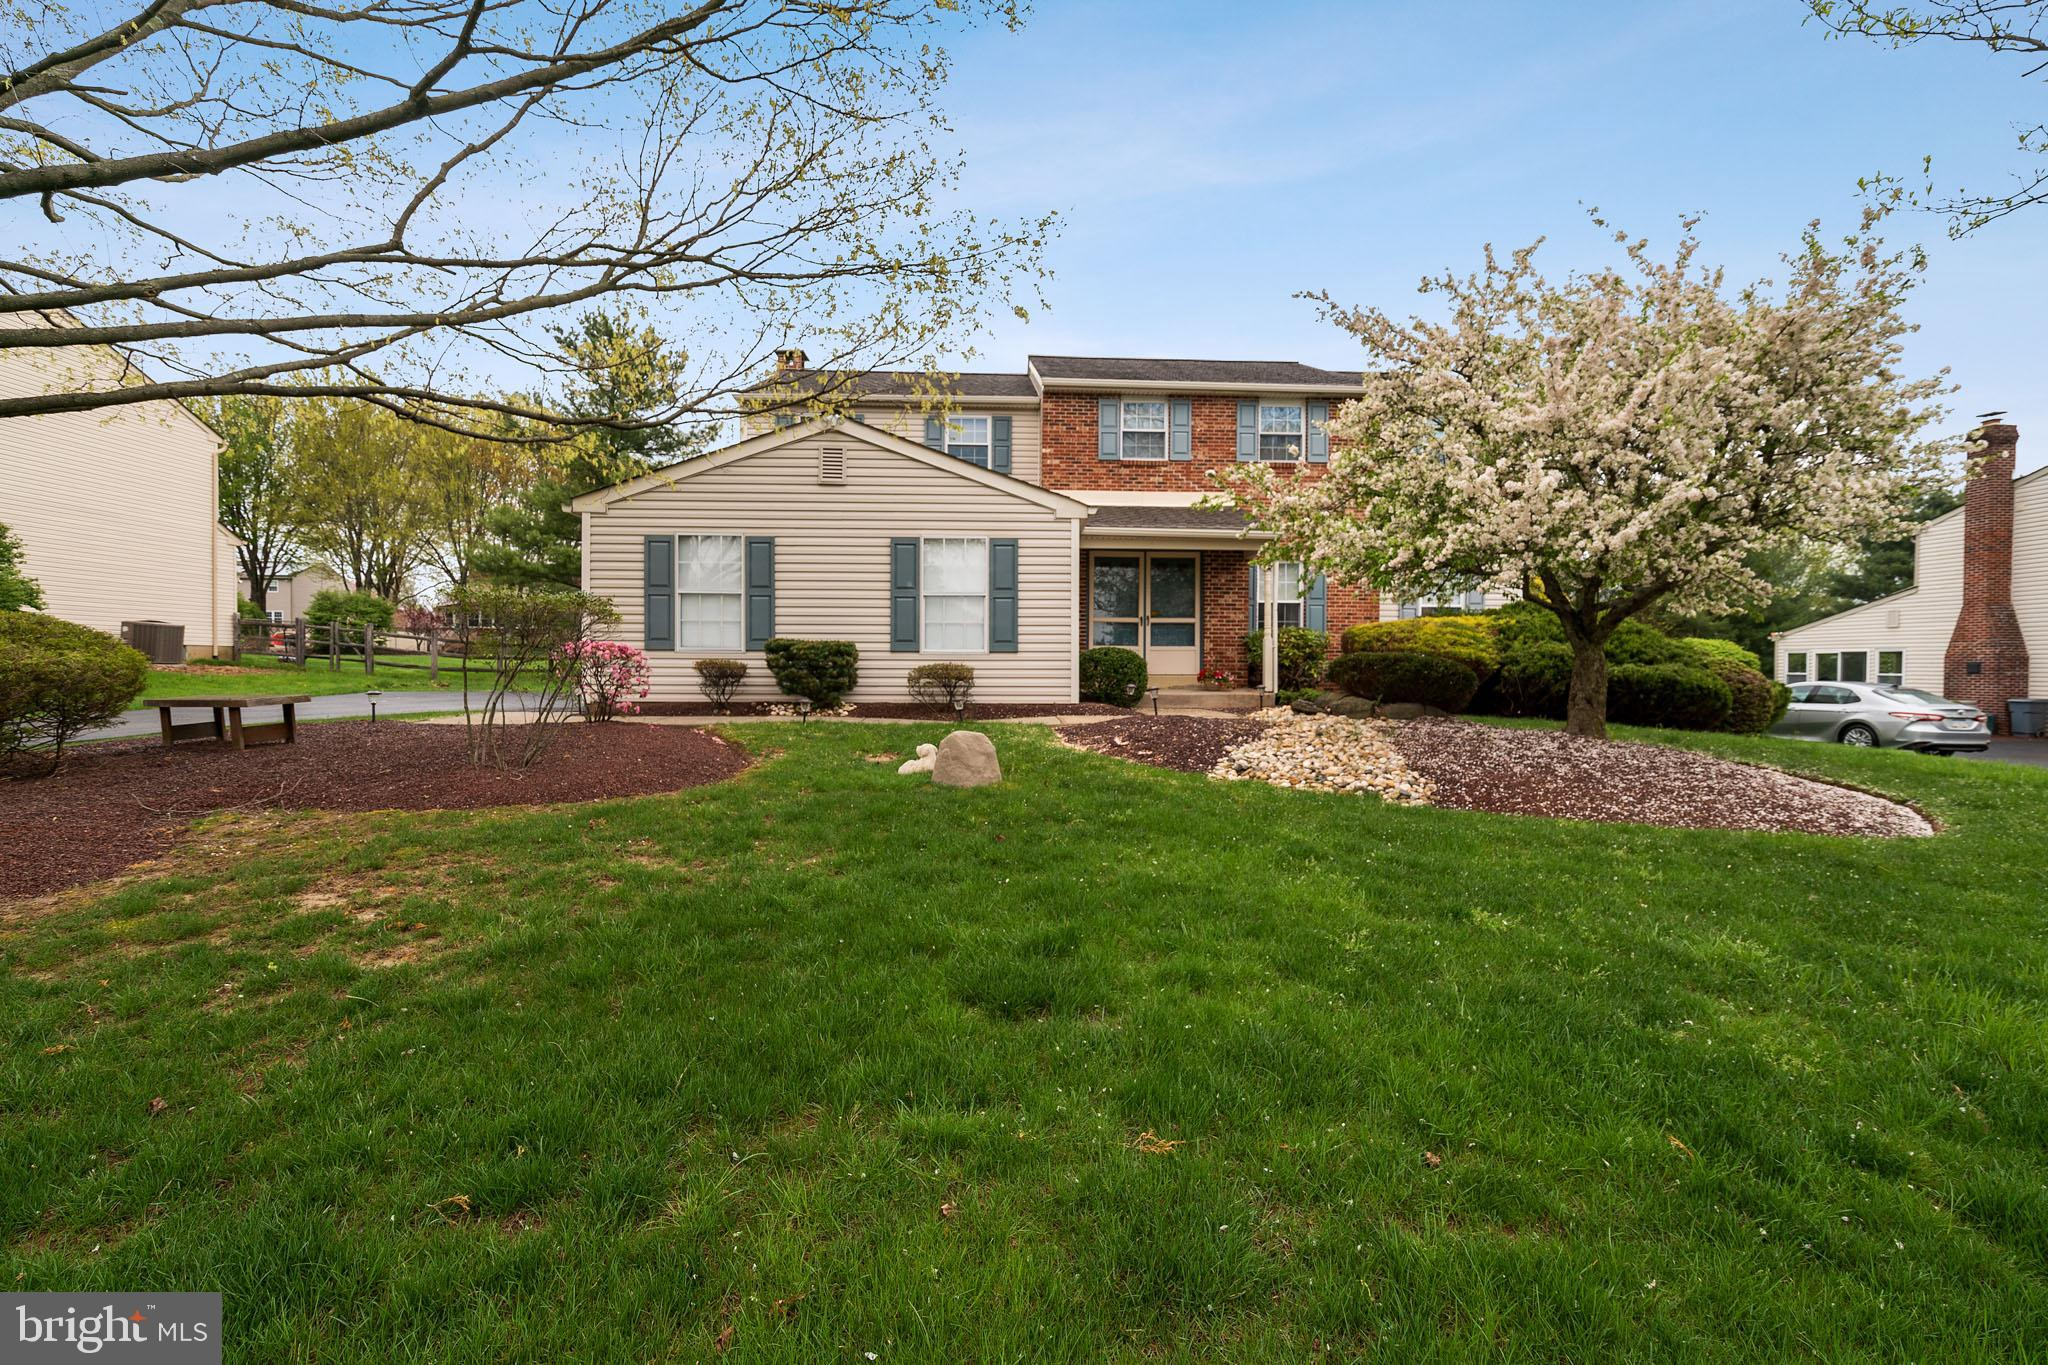 22 SAVAGE DRIVE, UPPER HOLLAND, PA 19053